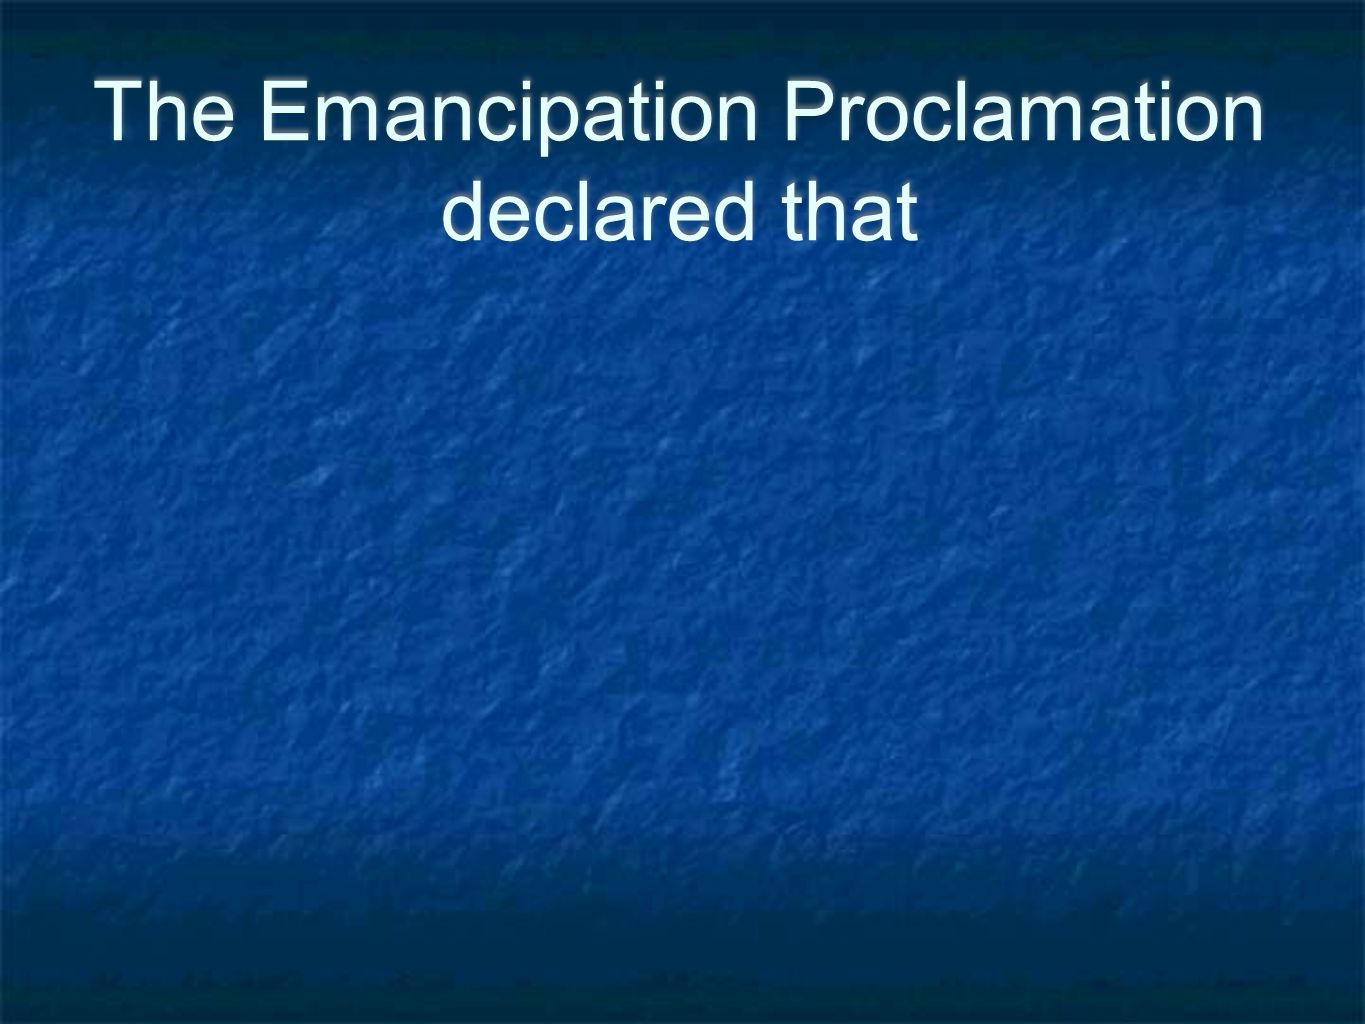 The Emancipation Proclamation declared that